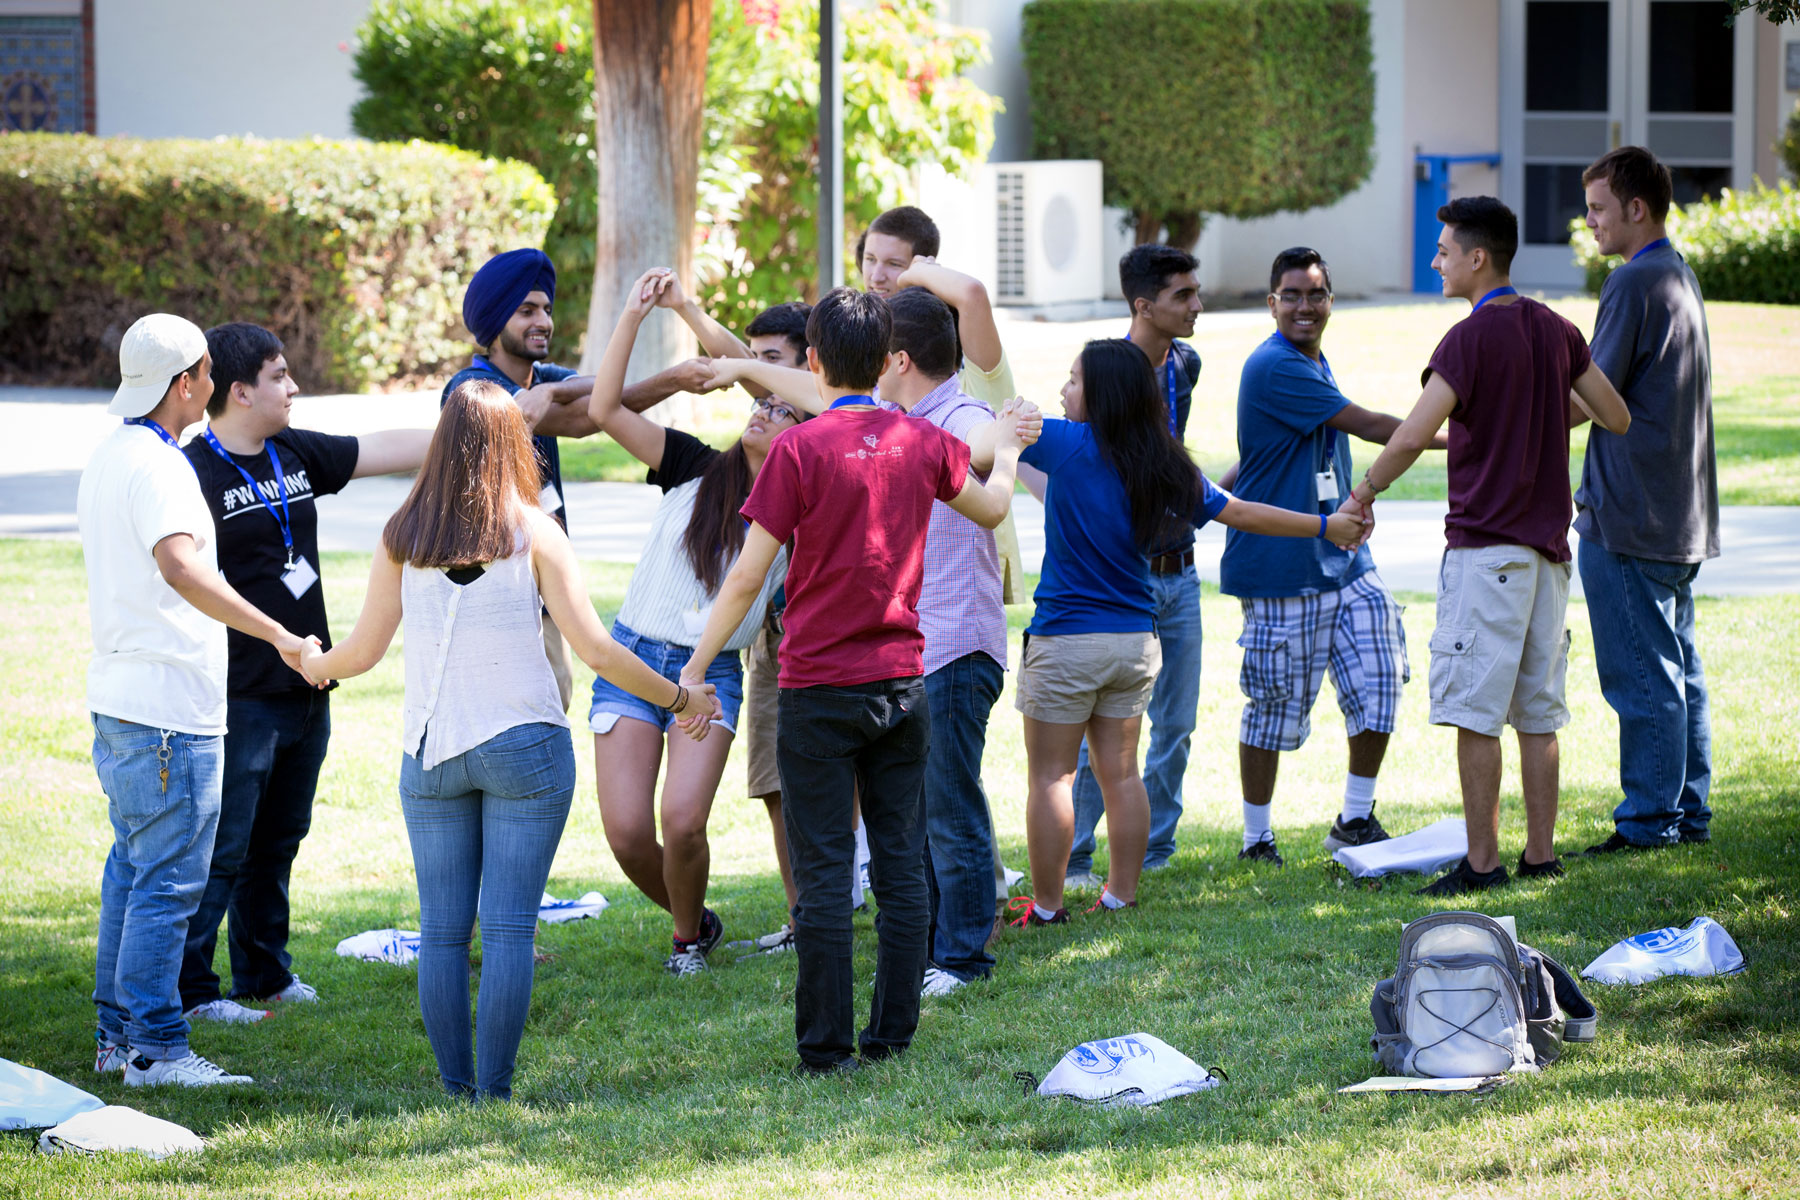 Freshman orientation students during an ice breaking activity.